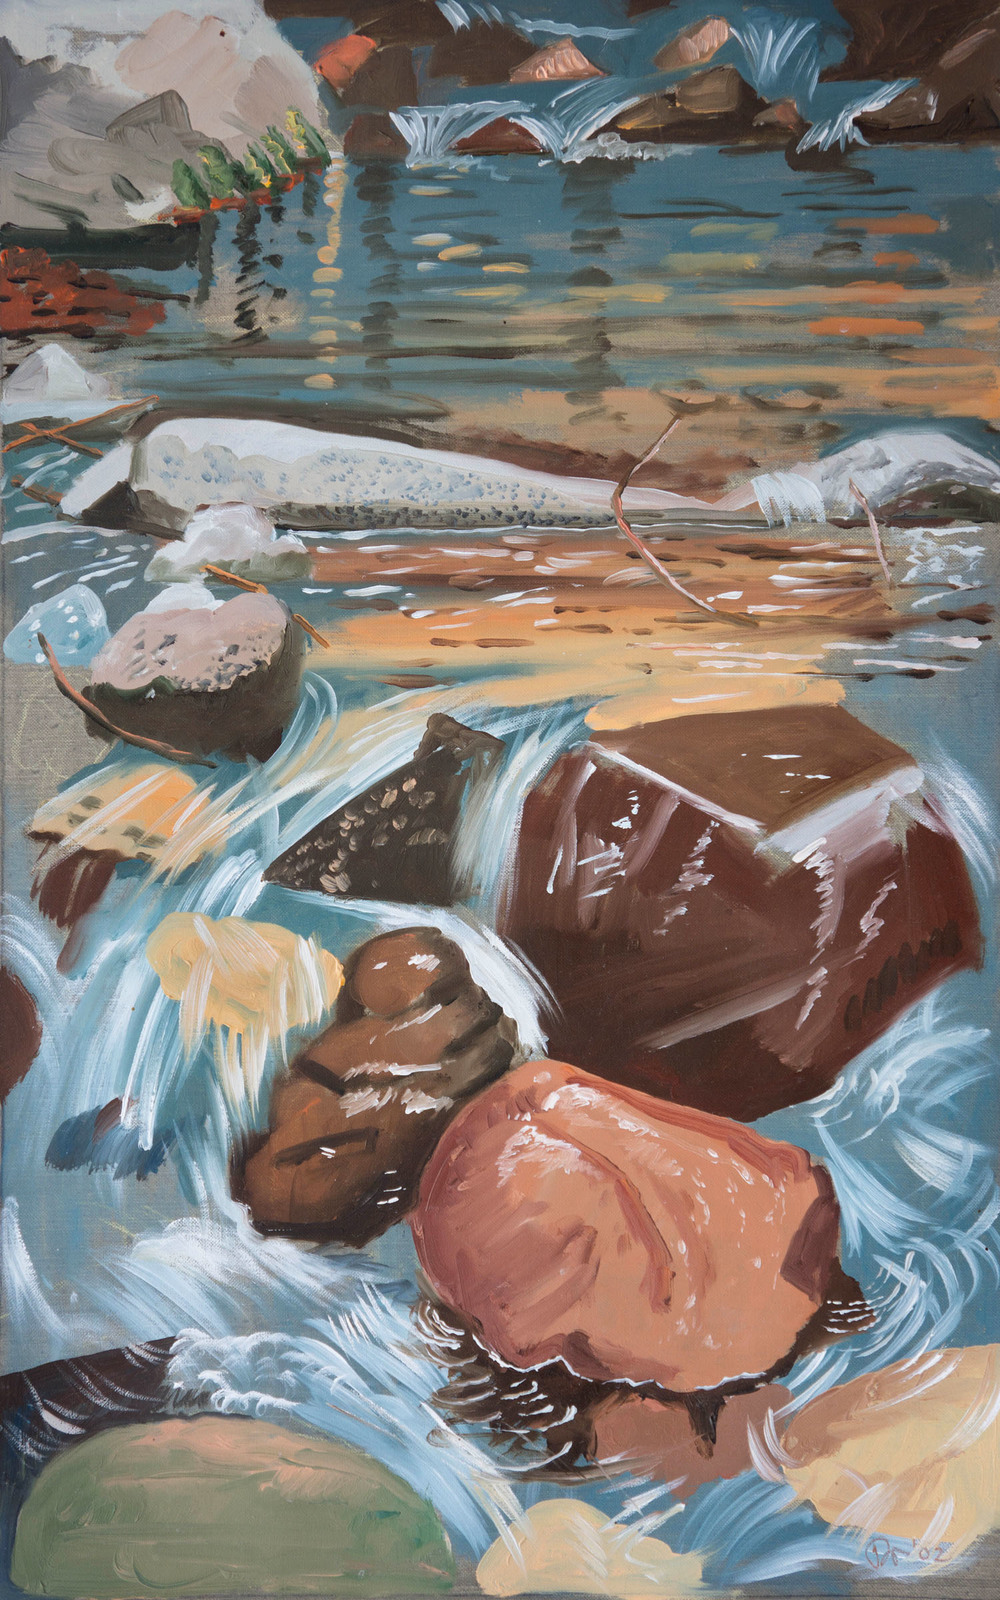 2002  rocks and water  51x32 inches